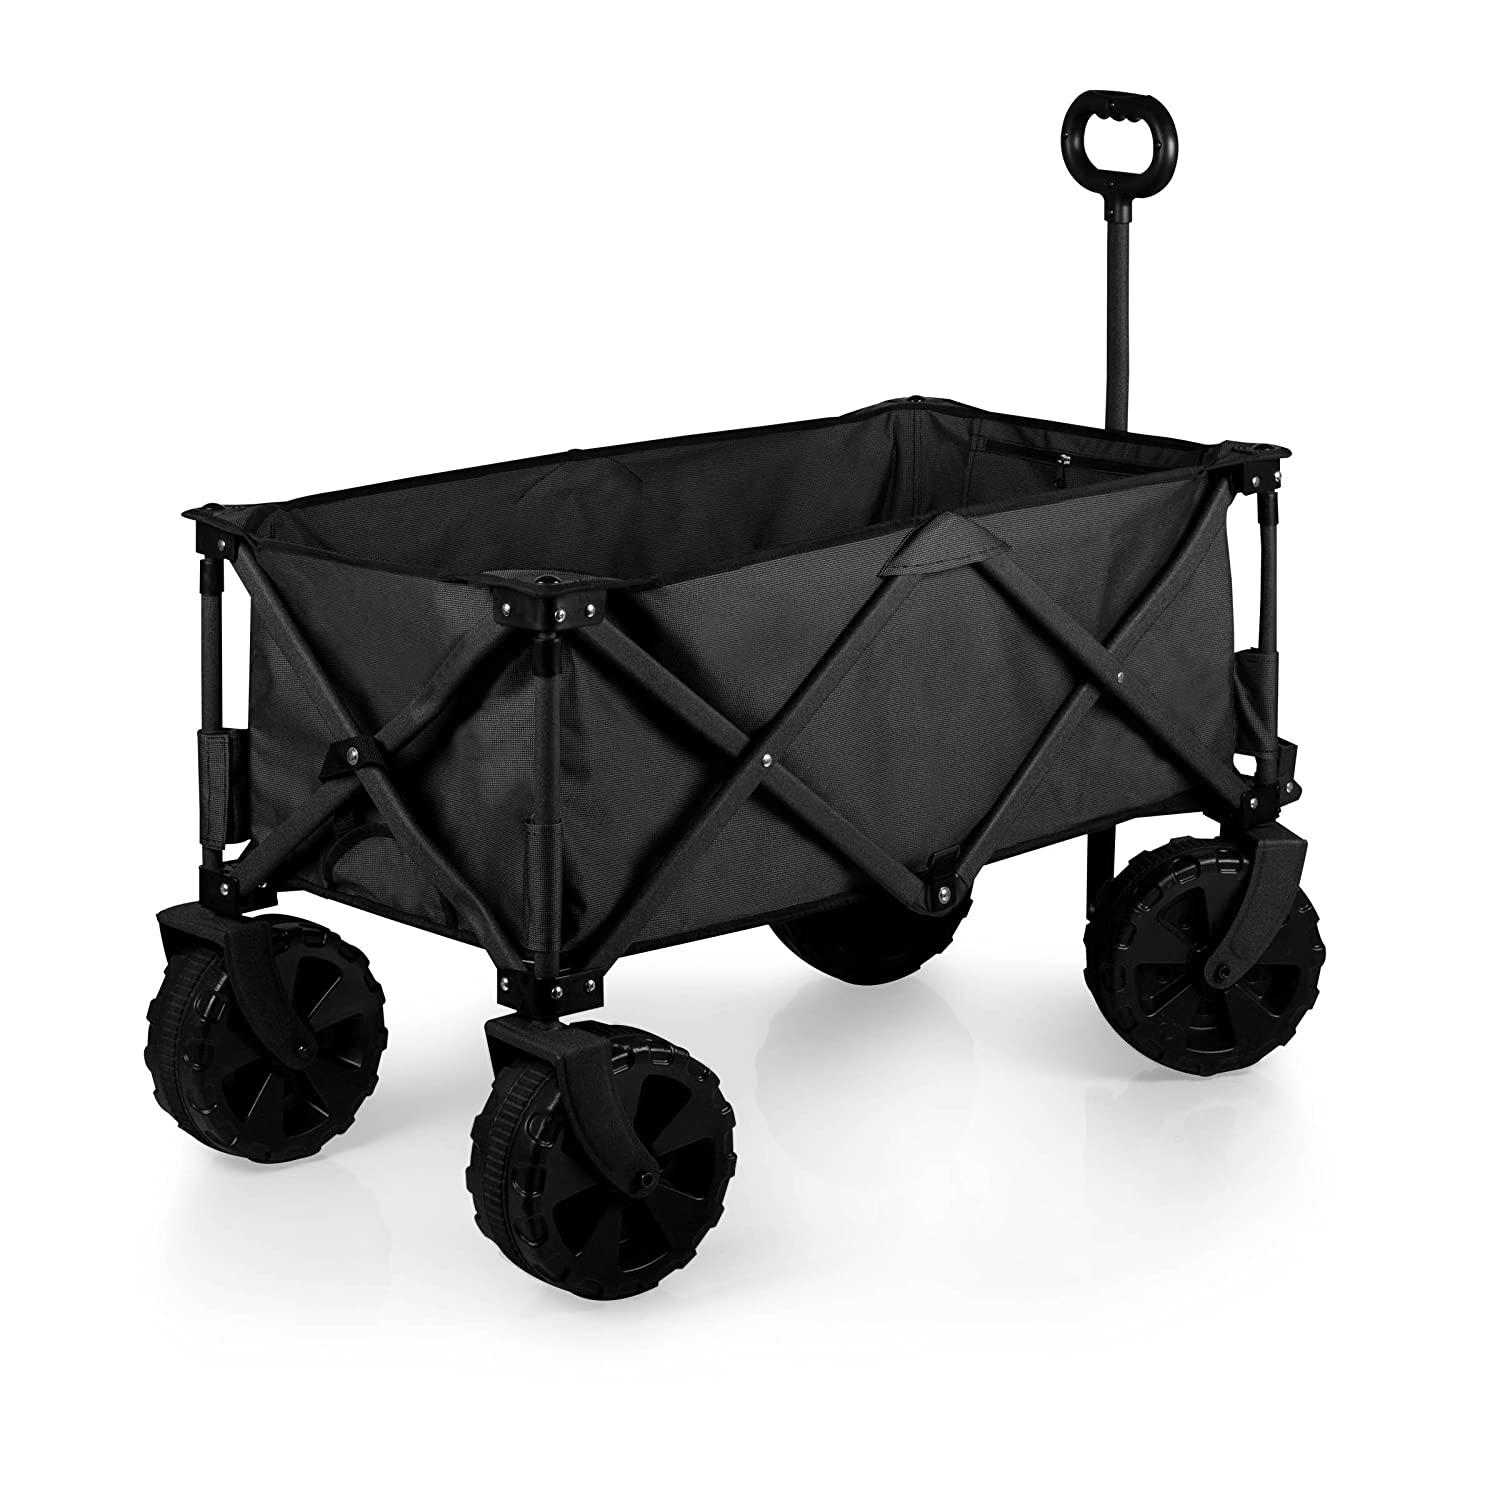 ONIVA – a Picnic Time Brand Collapsible Adventure Wagon with All-Terrain Wheels, Black Gray